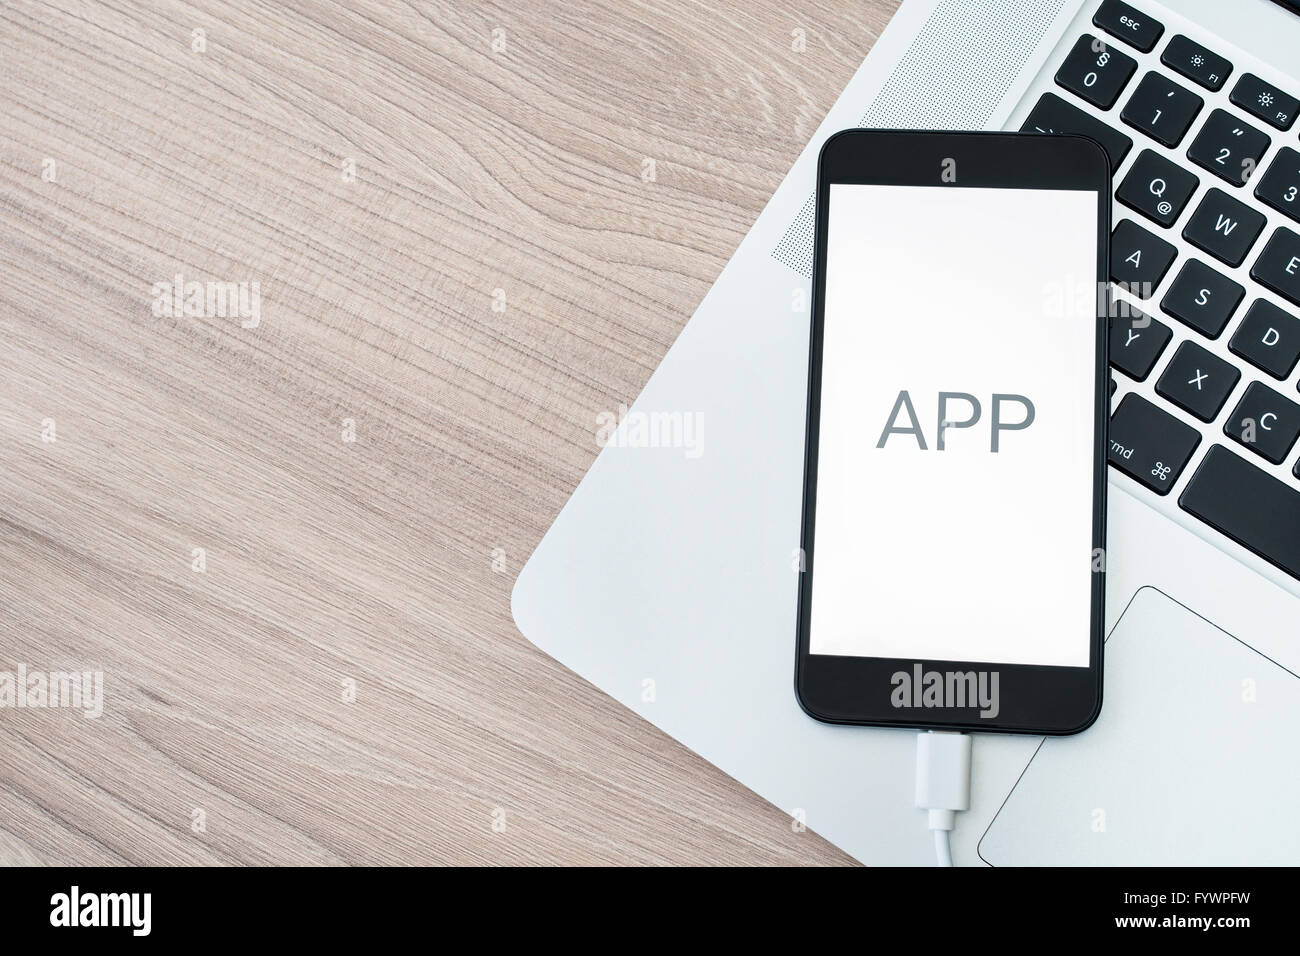 Mobile application development with computer and smartphone - Stock Image